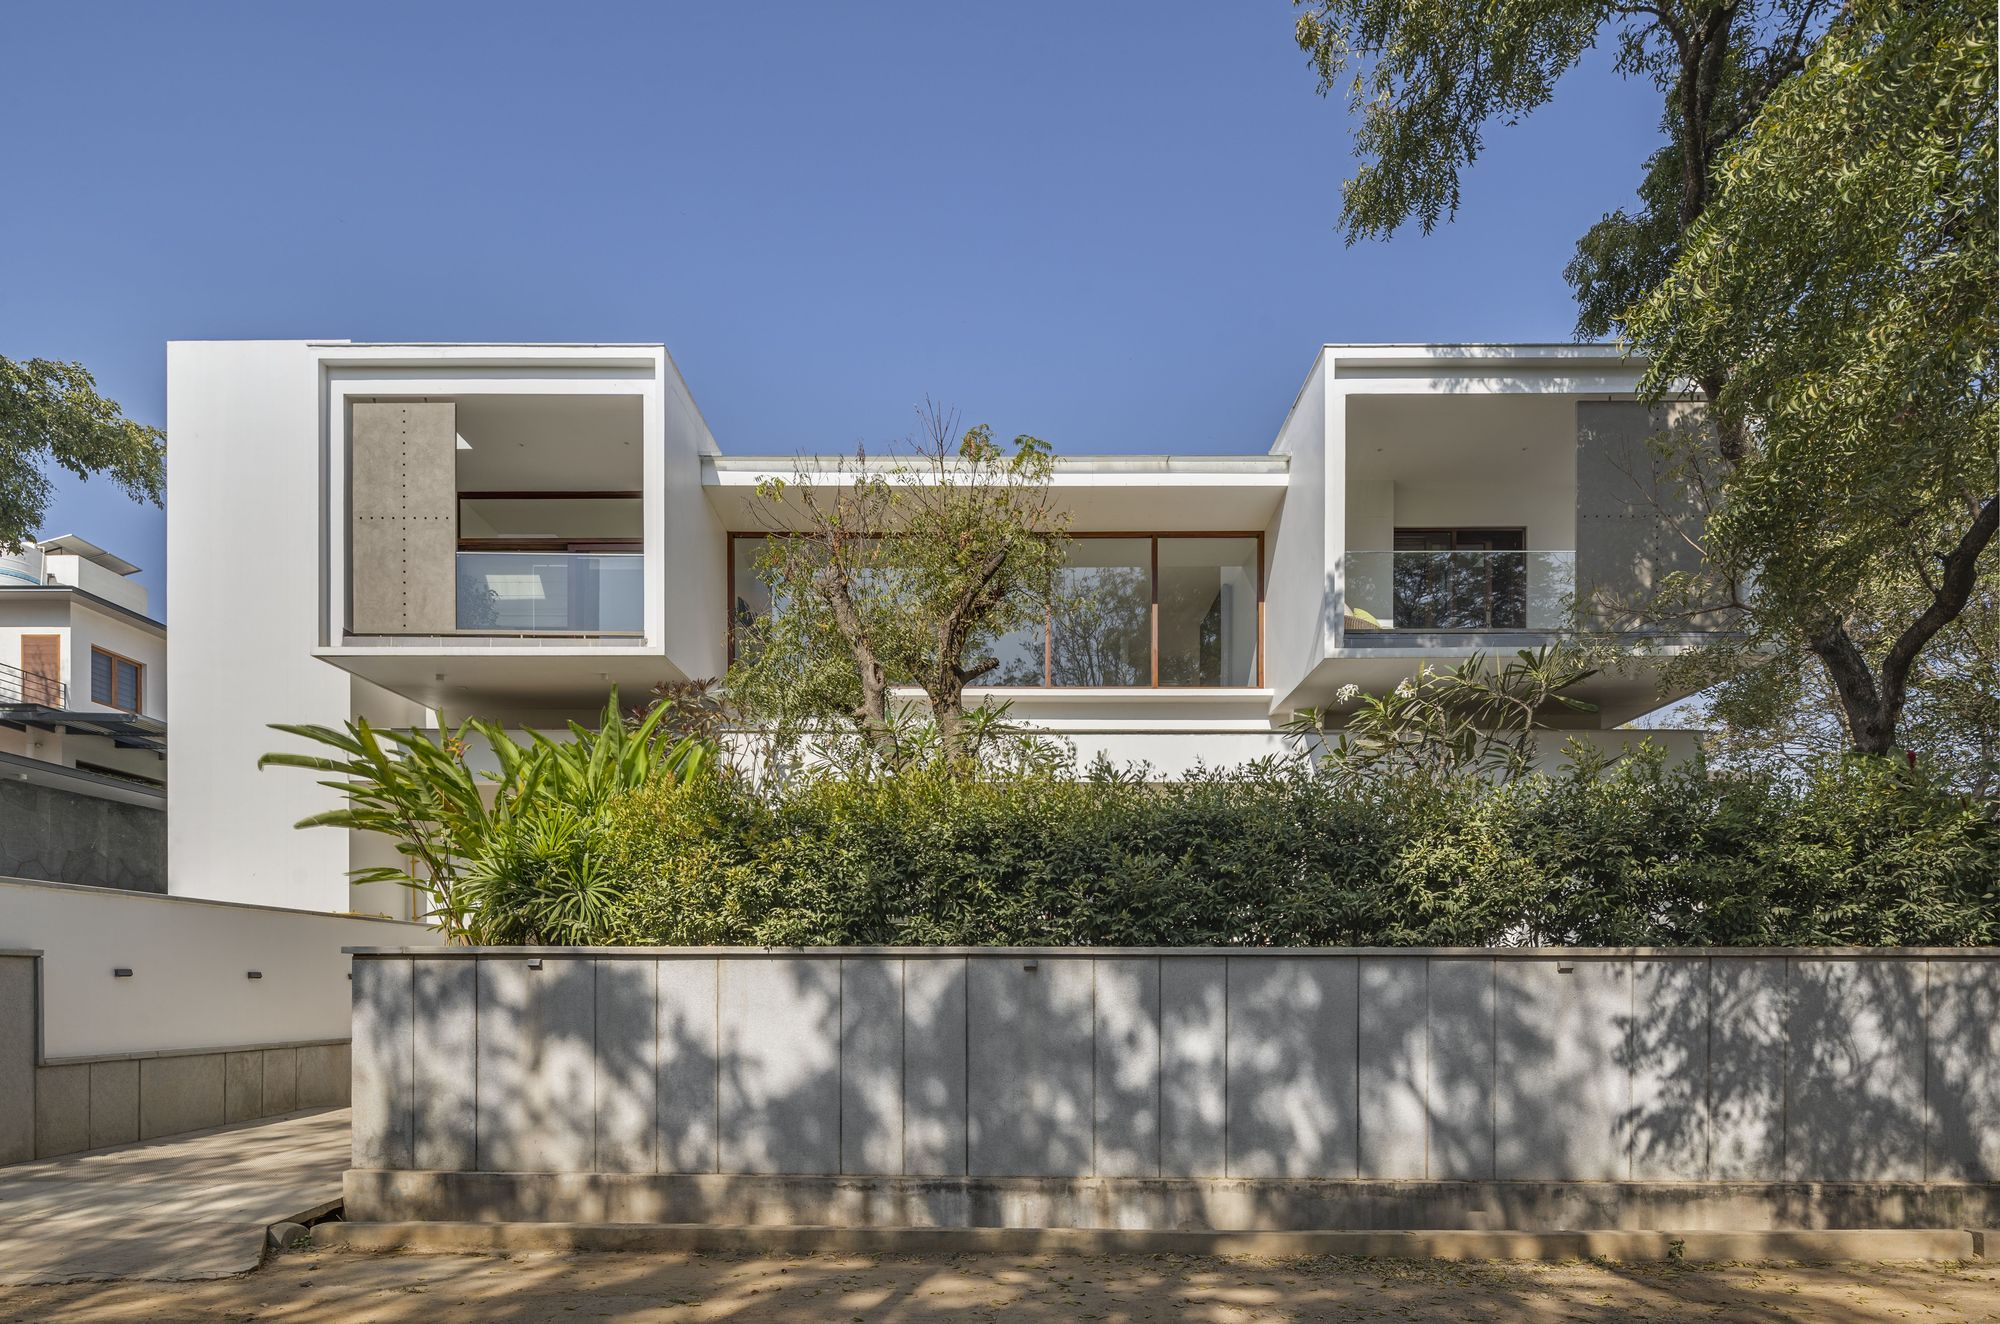 Houses architecture and design | ArchDaily